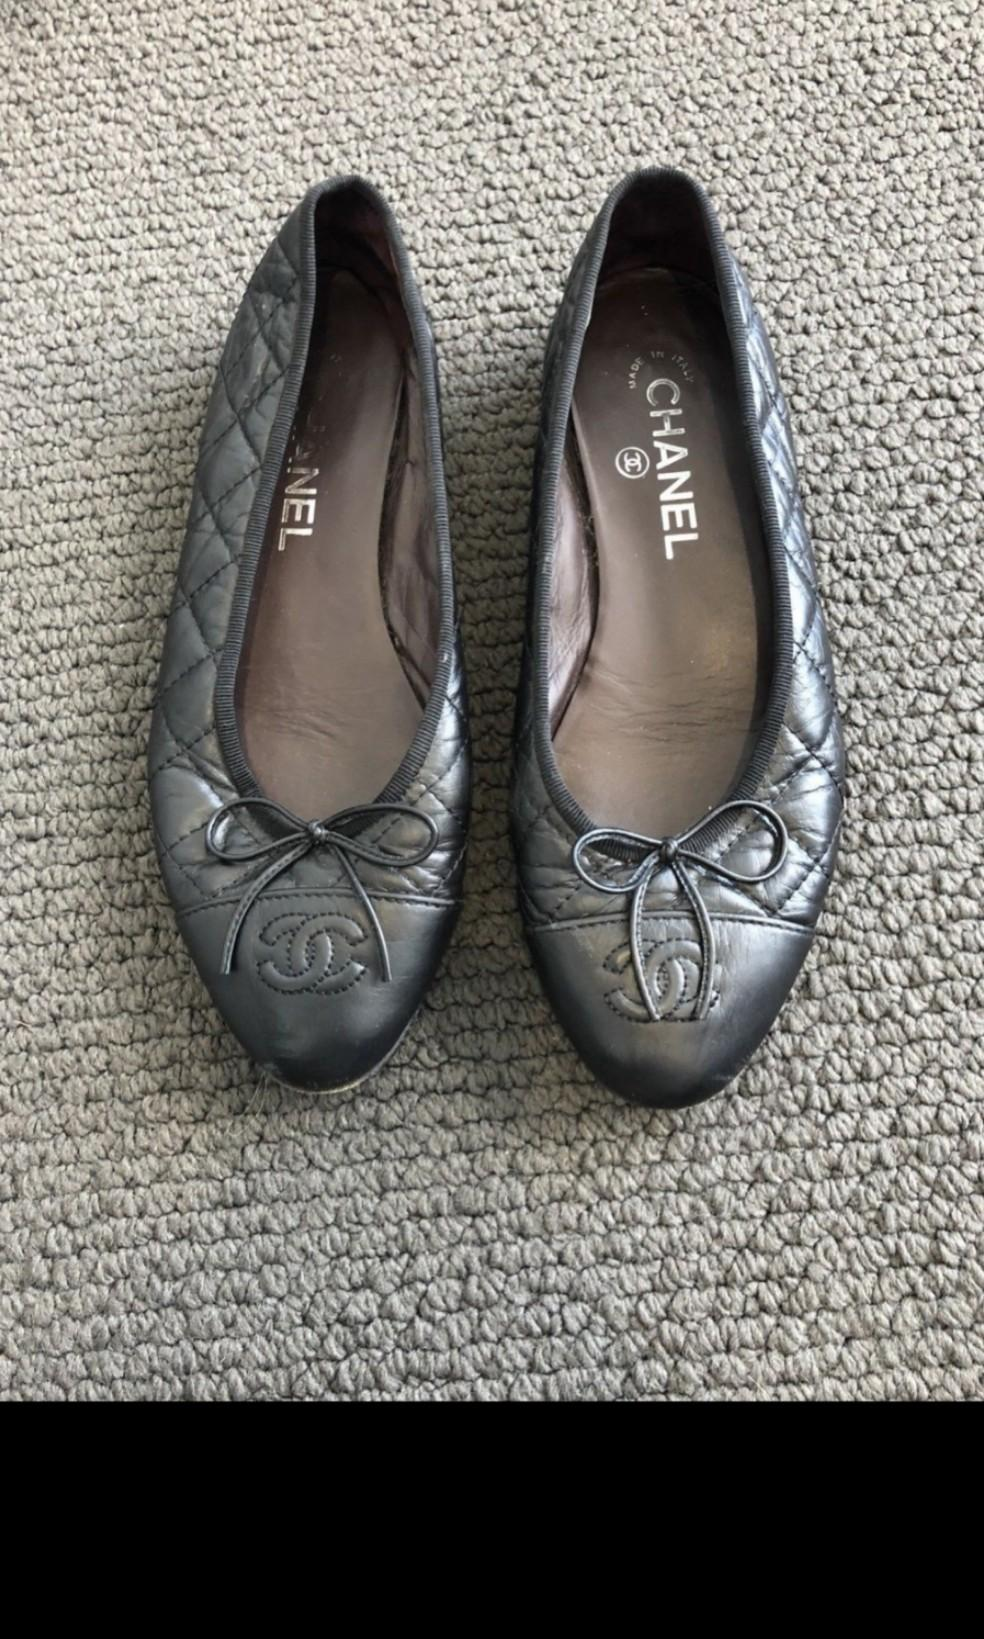 Authentic chanel ballet flats 37